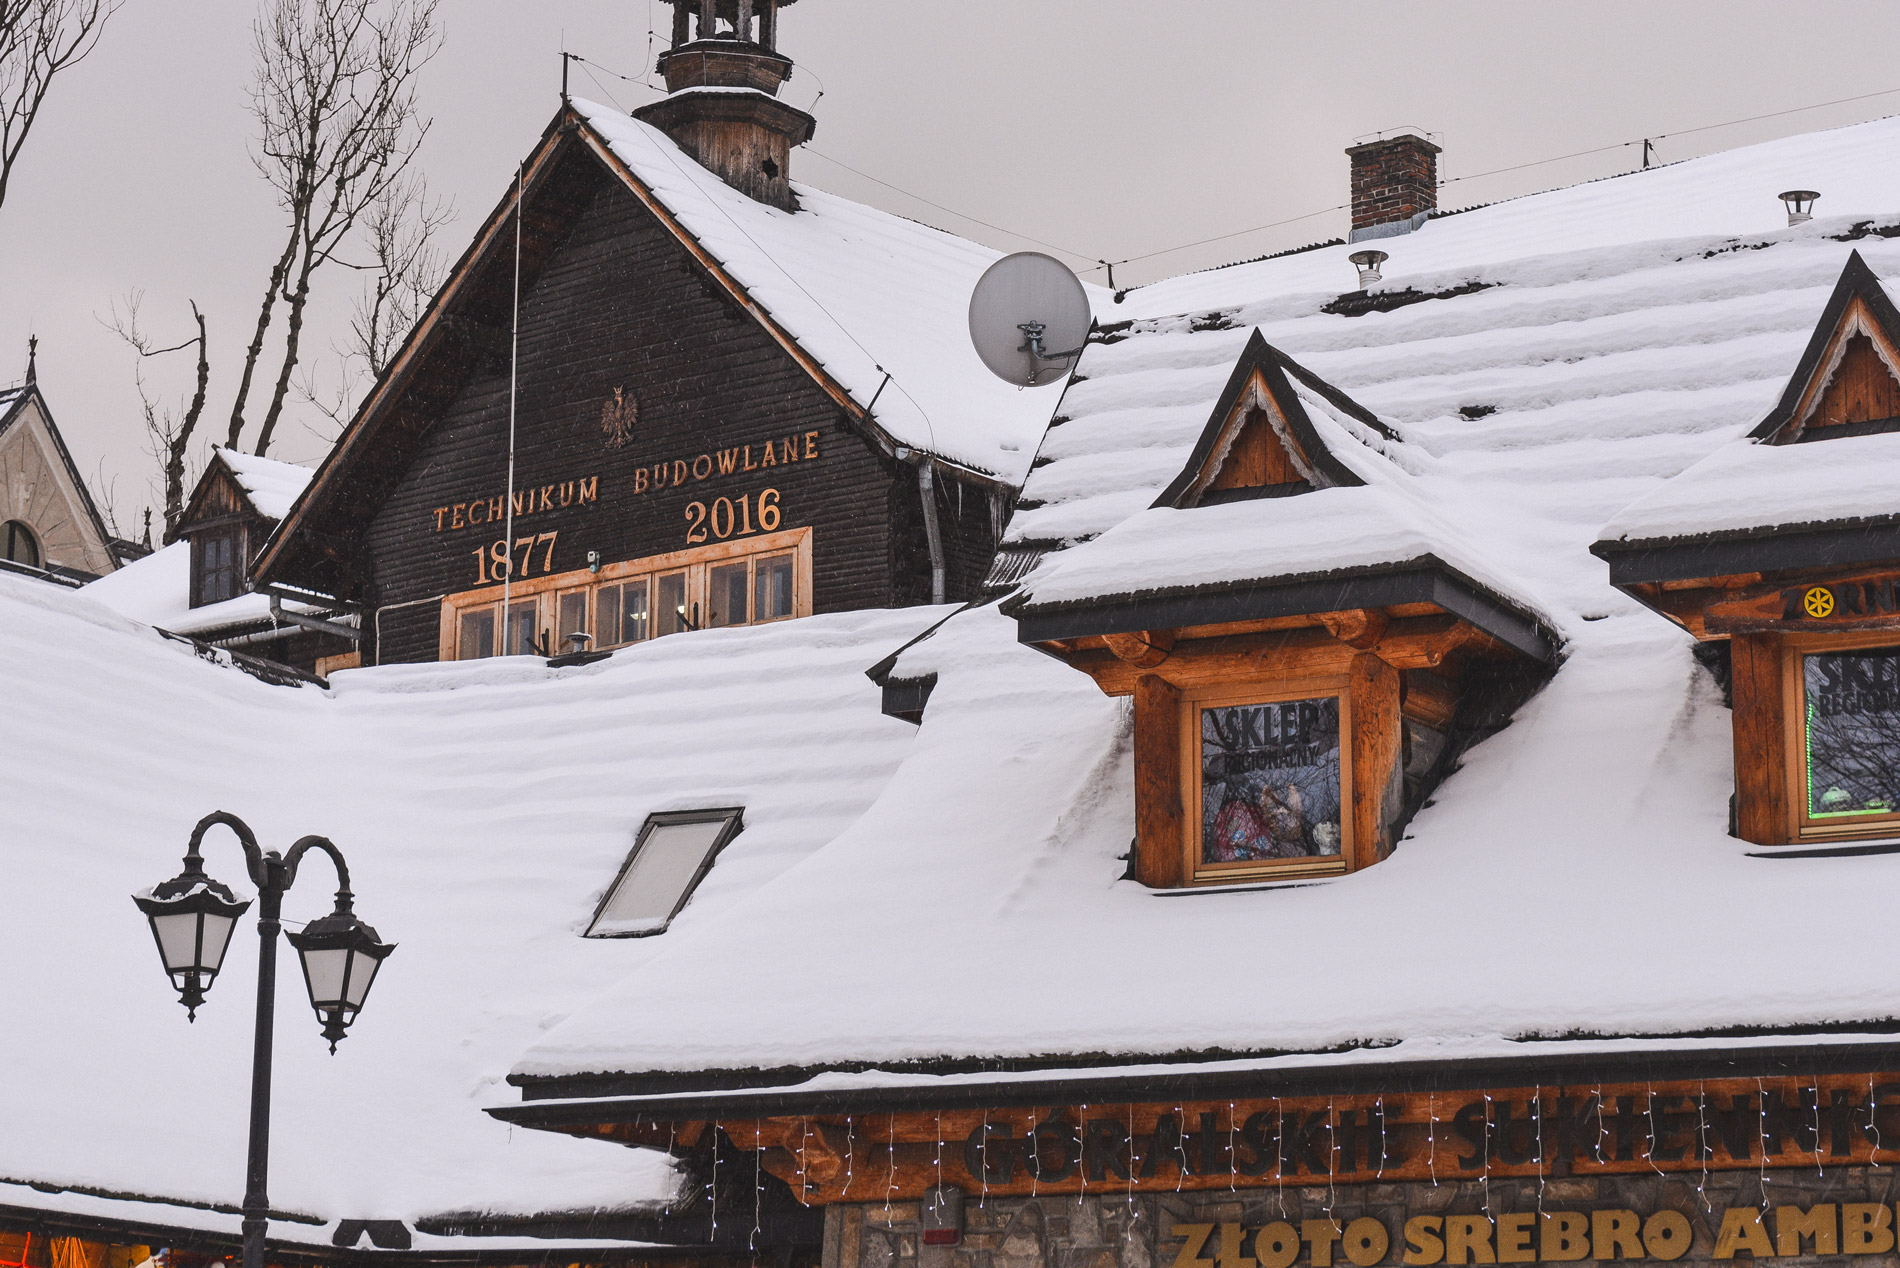 The Technikum Budowlane in Zakopane covered in snow